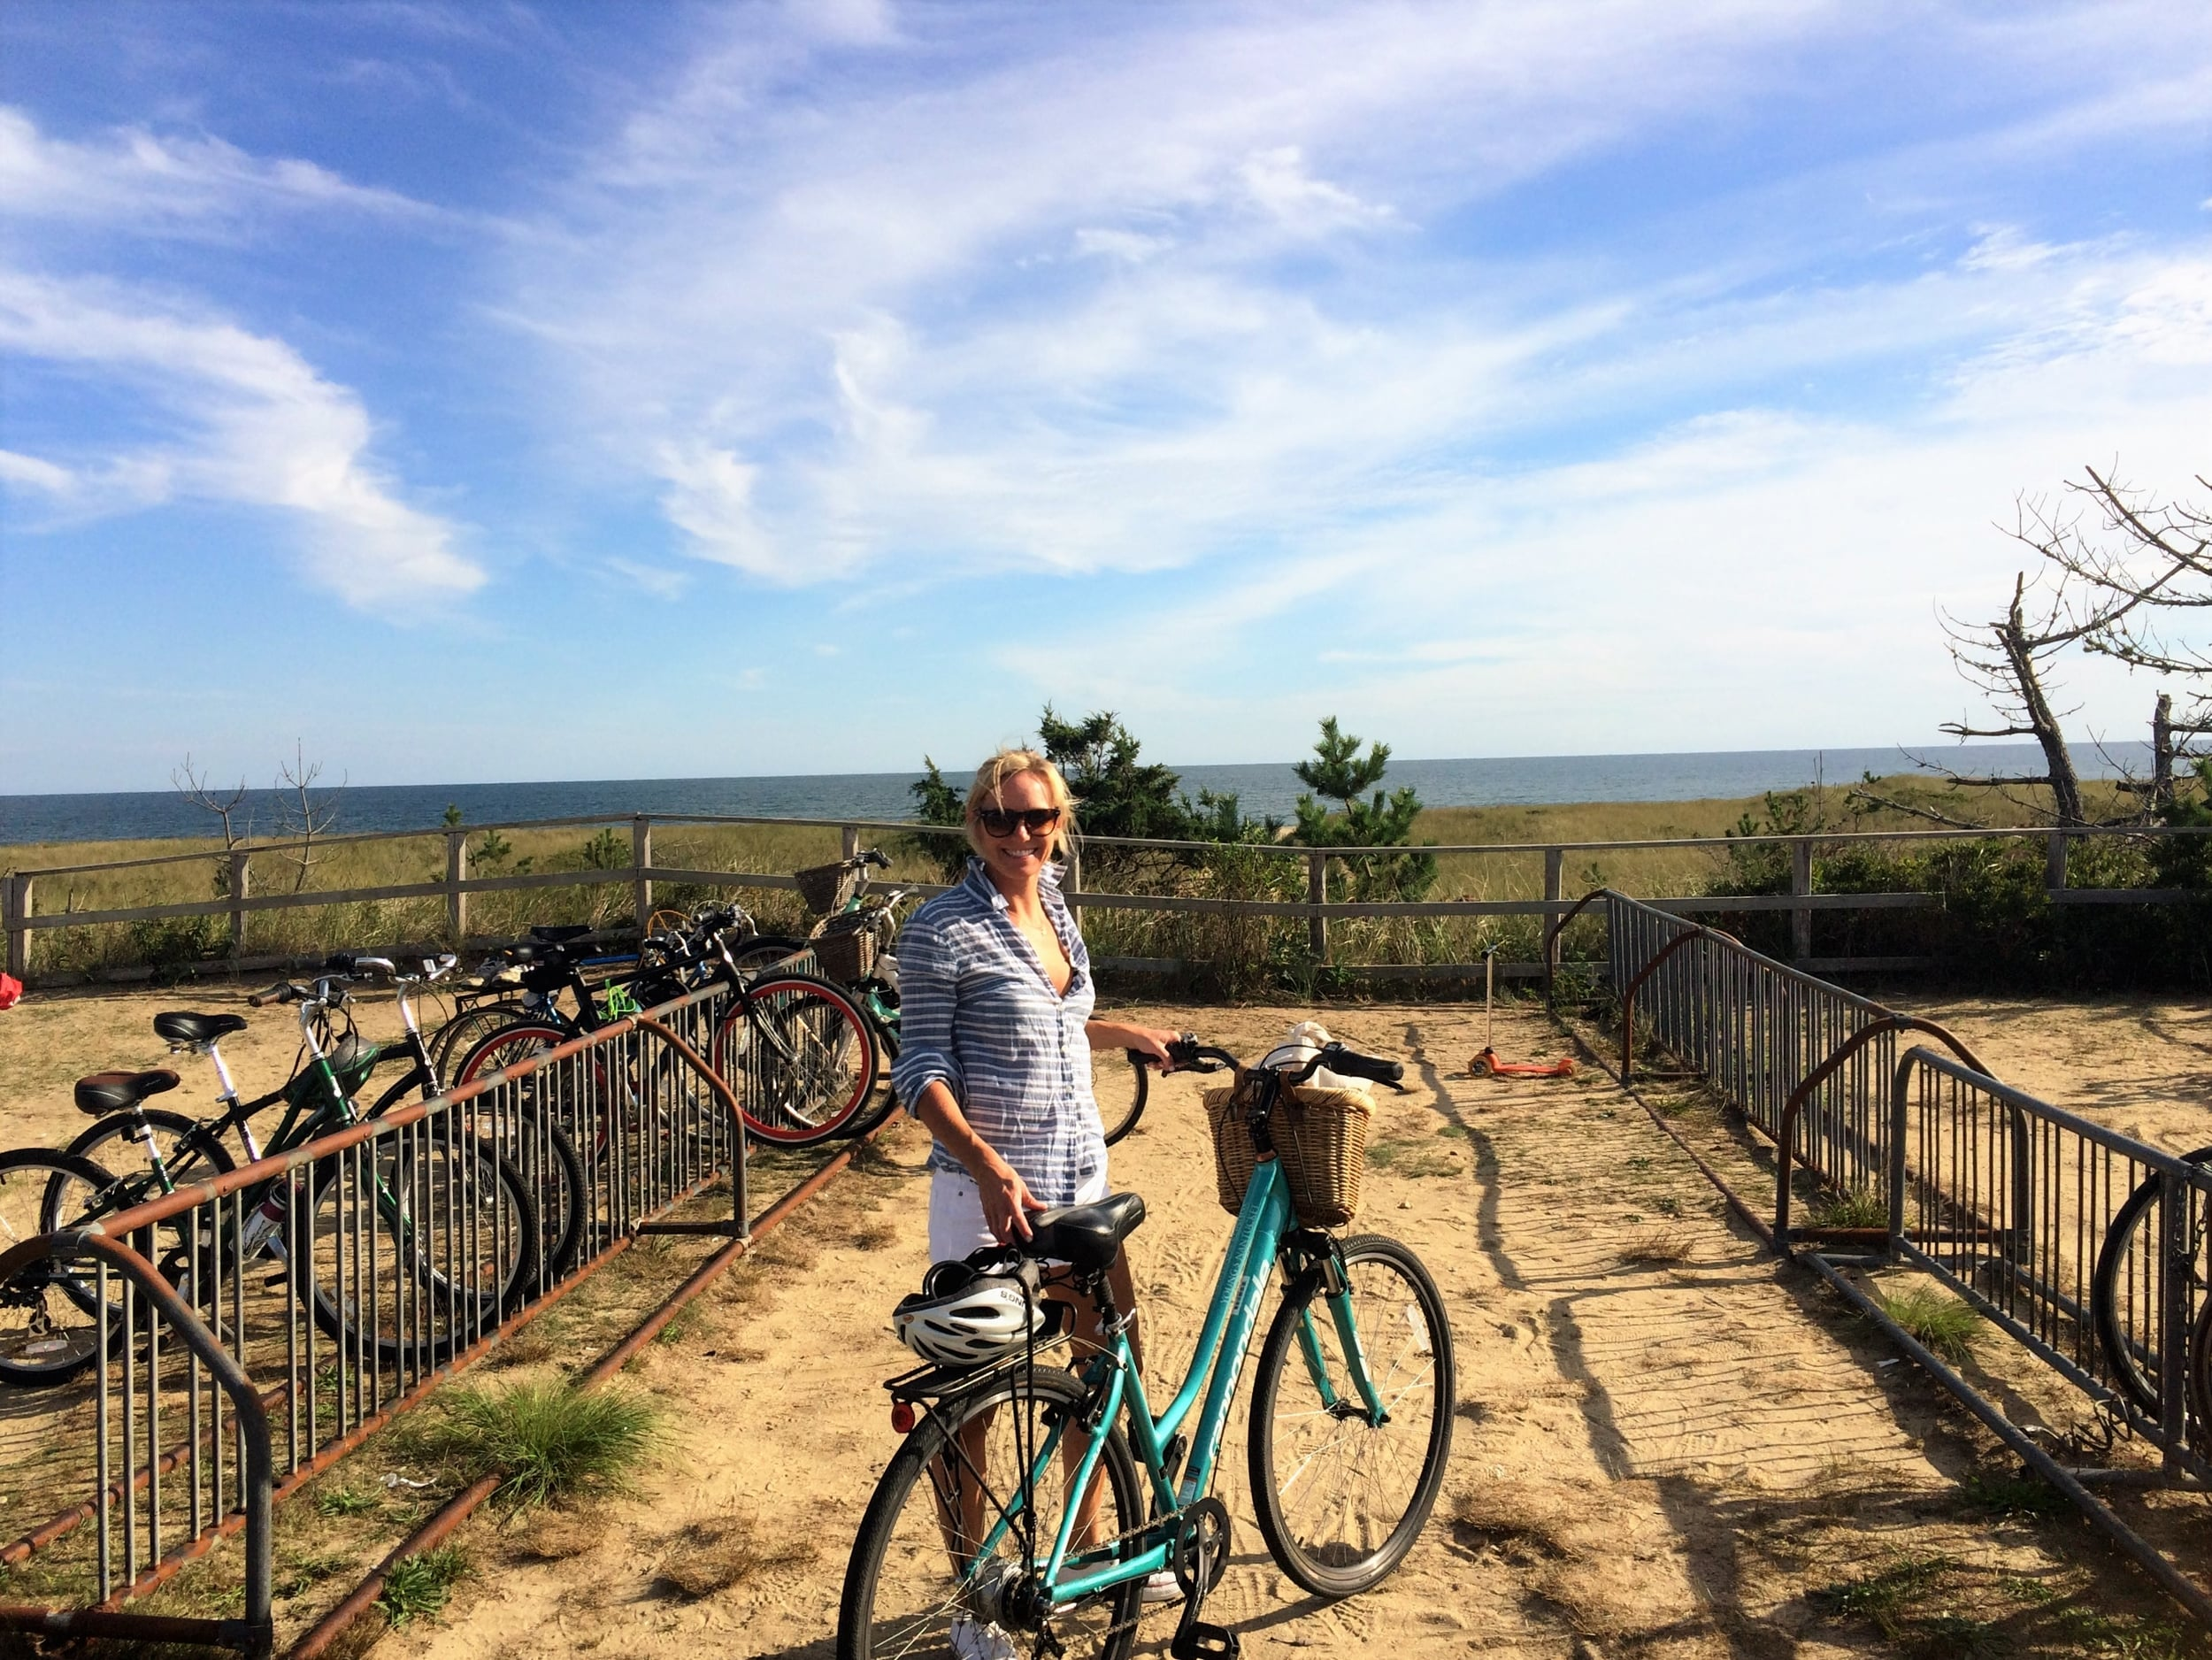 #nantucketbeaches #bikingafterbrews #septembersunshine #youngsbicycleshop #nantucketweekend2015 #raybans #jcrew